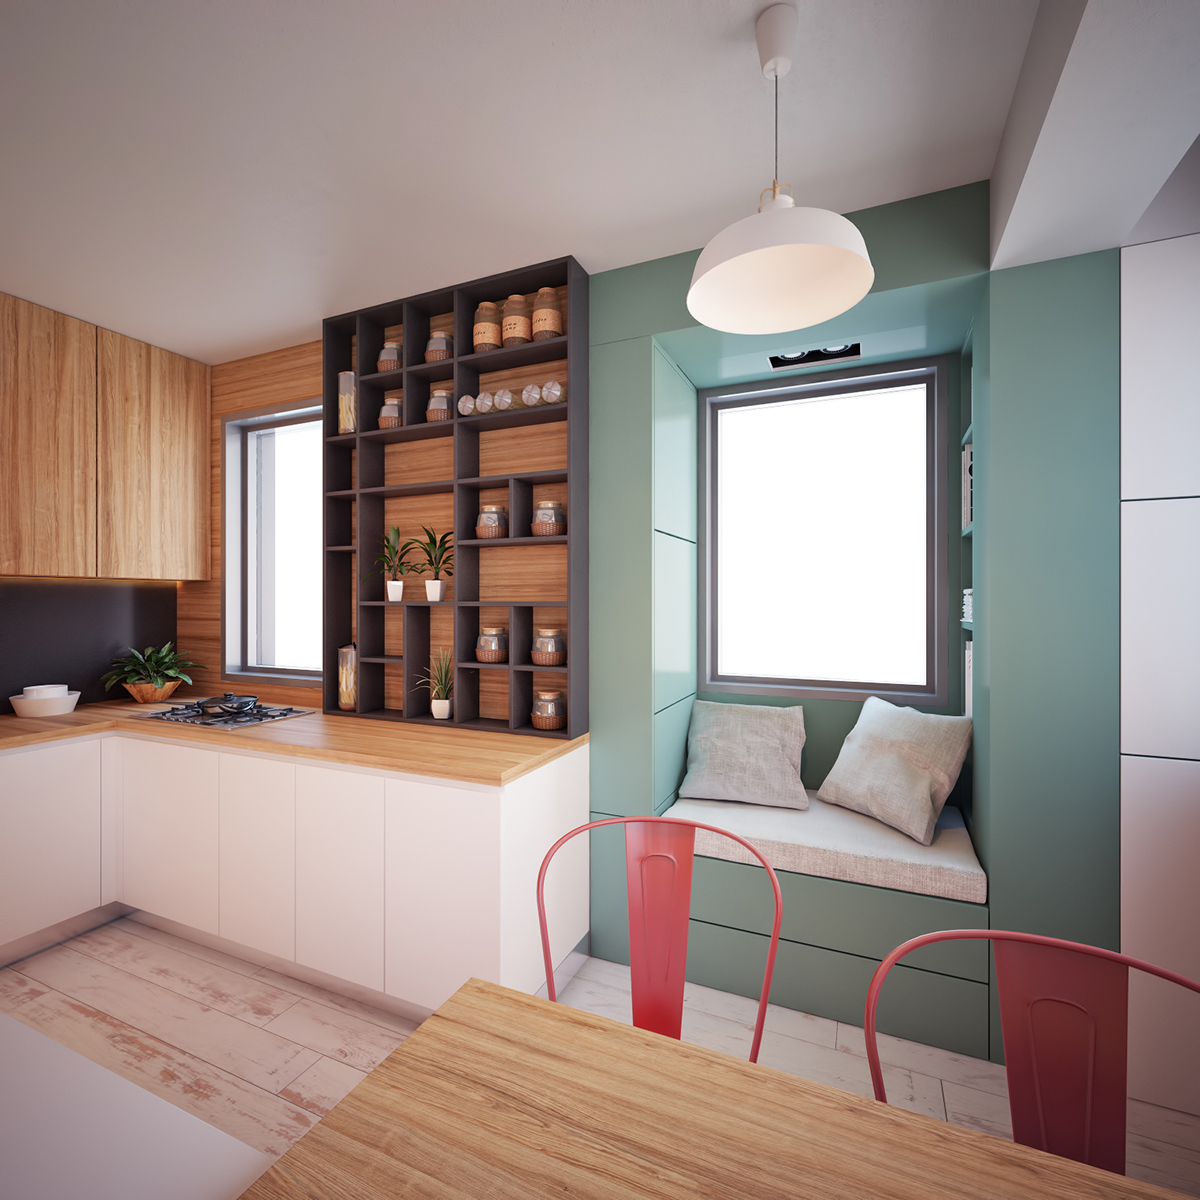 30m2 apartment on behance for 35m2 apartment design